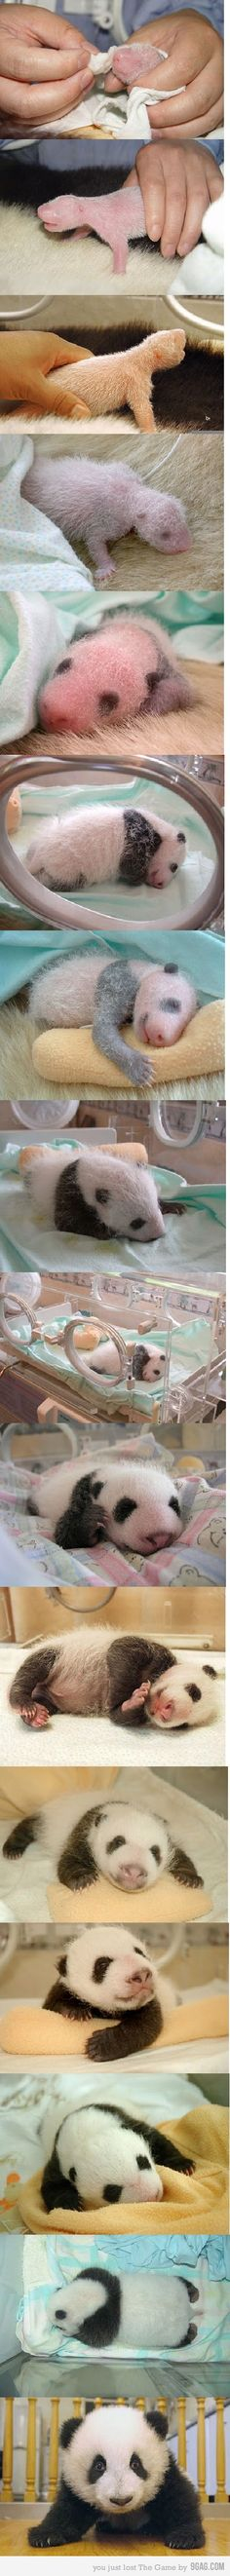 Baby Panda. Cute when their little, cute when they grow up too!